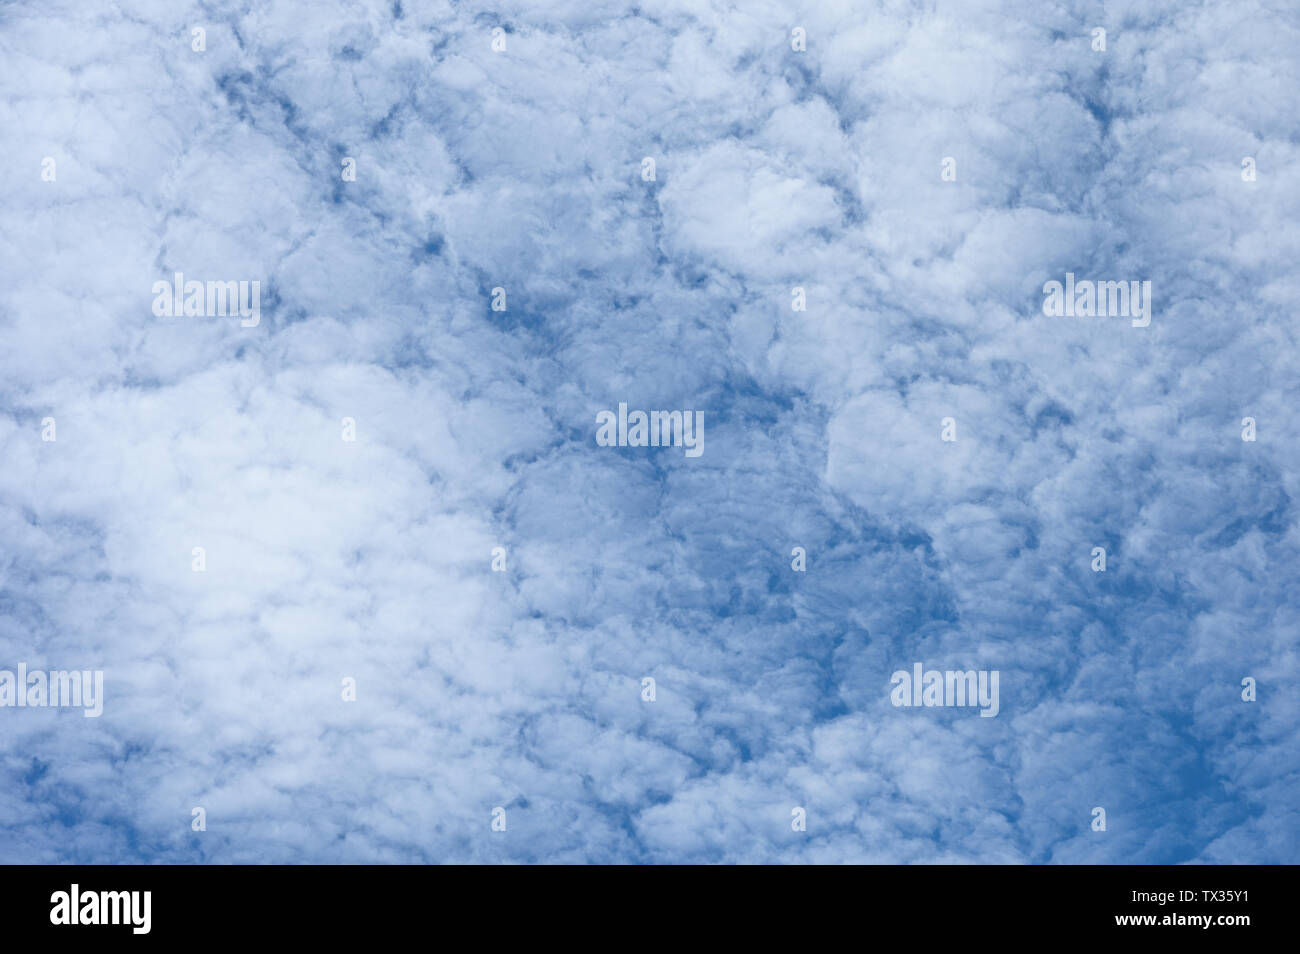 Altocumulus white clouds on blue sky background - Stock Image